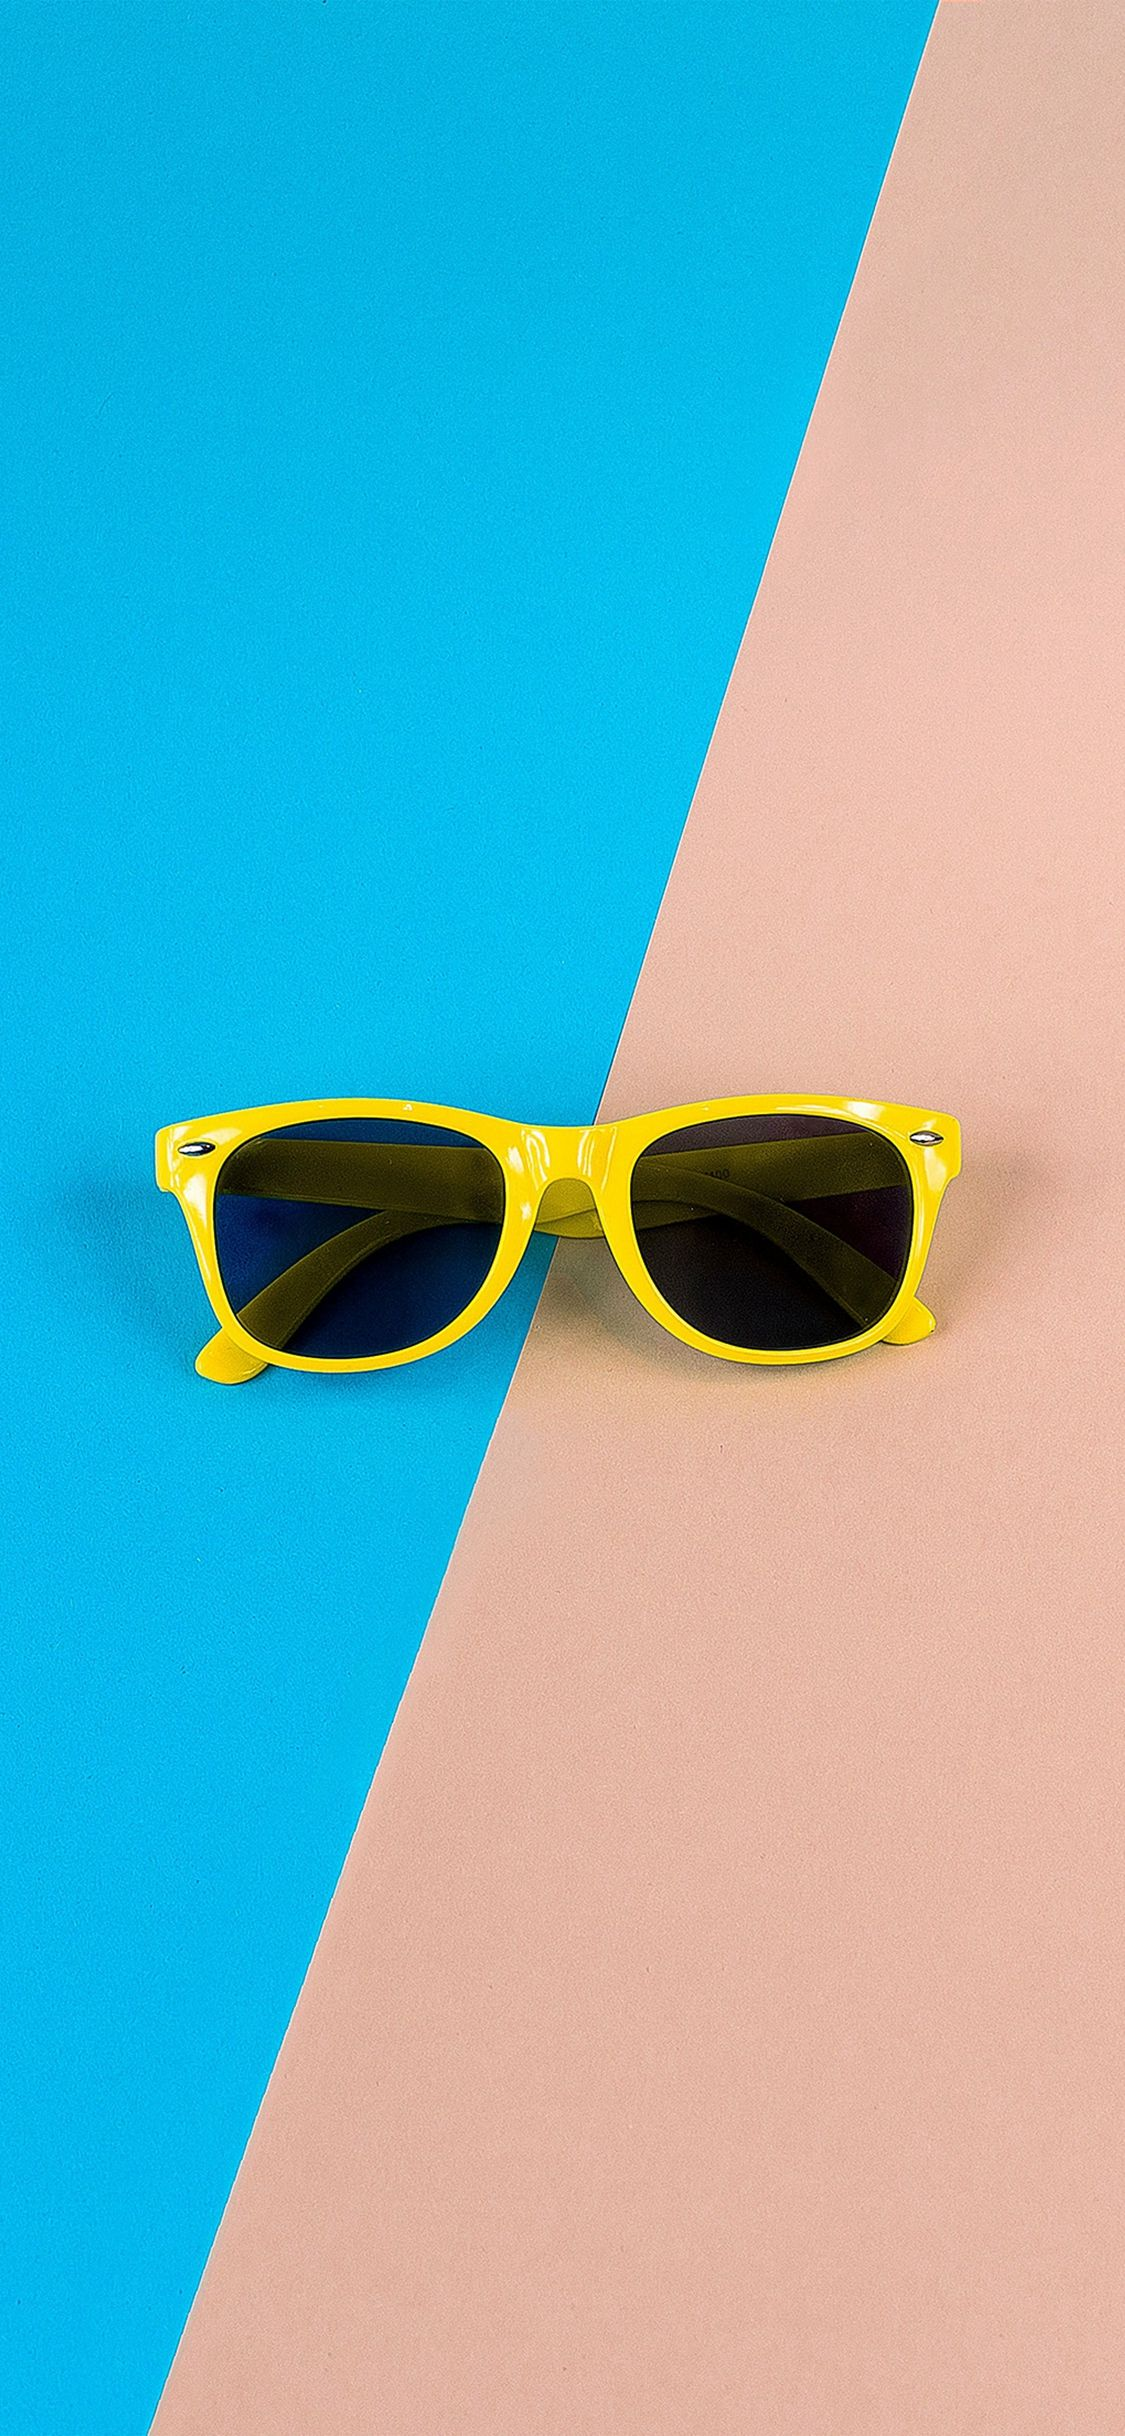 Minimal Glasses Pink Blue Yellow Iphone X Wallpaper Iphone X